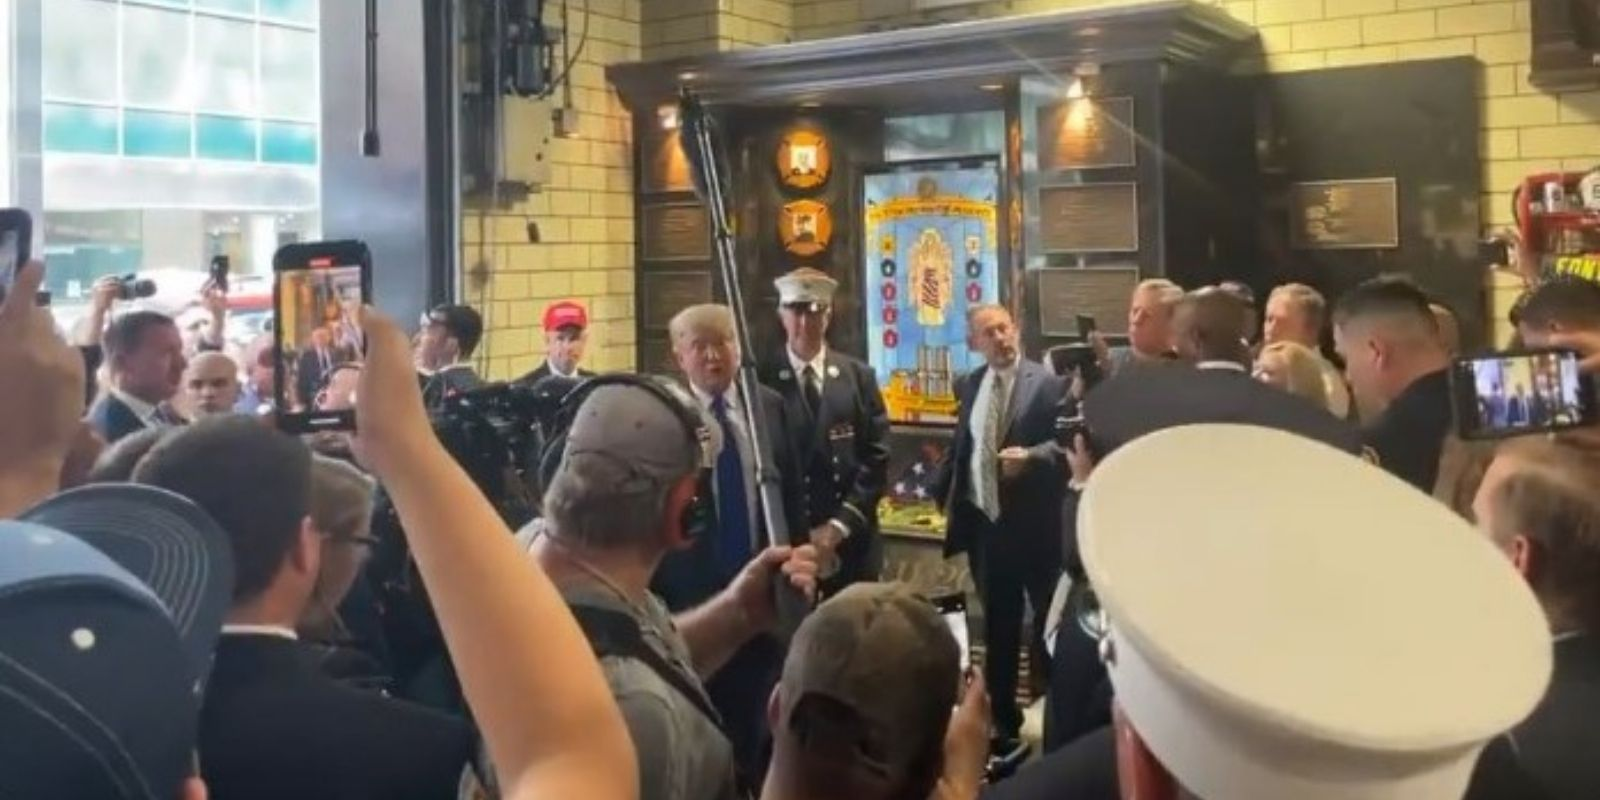 BREAKING: Donald Trump makes surprise visit to NYPD and FDNY on 20th anniversary of 9/11